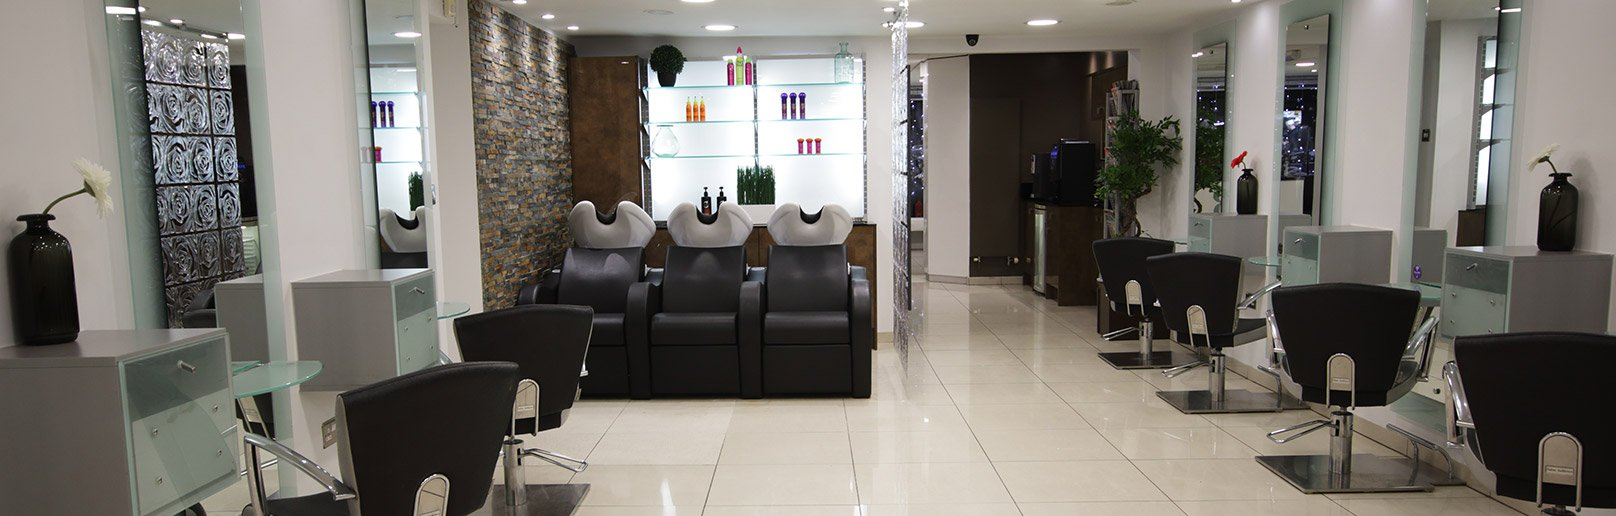 Forresters Reading hair salon view 2